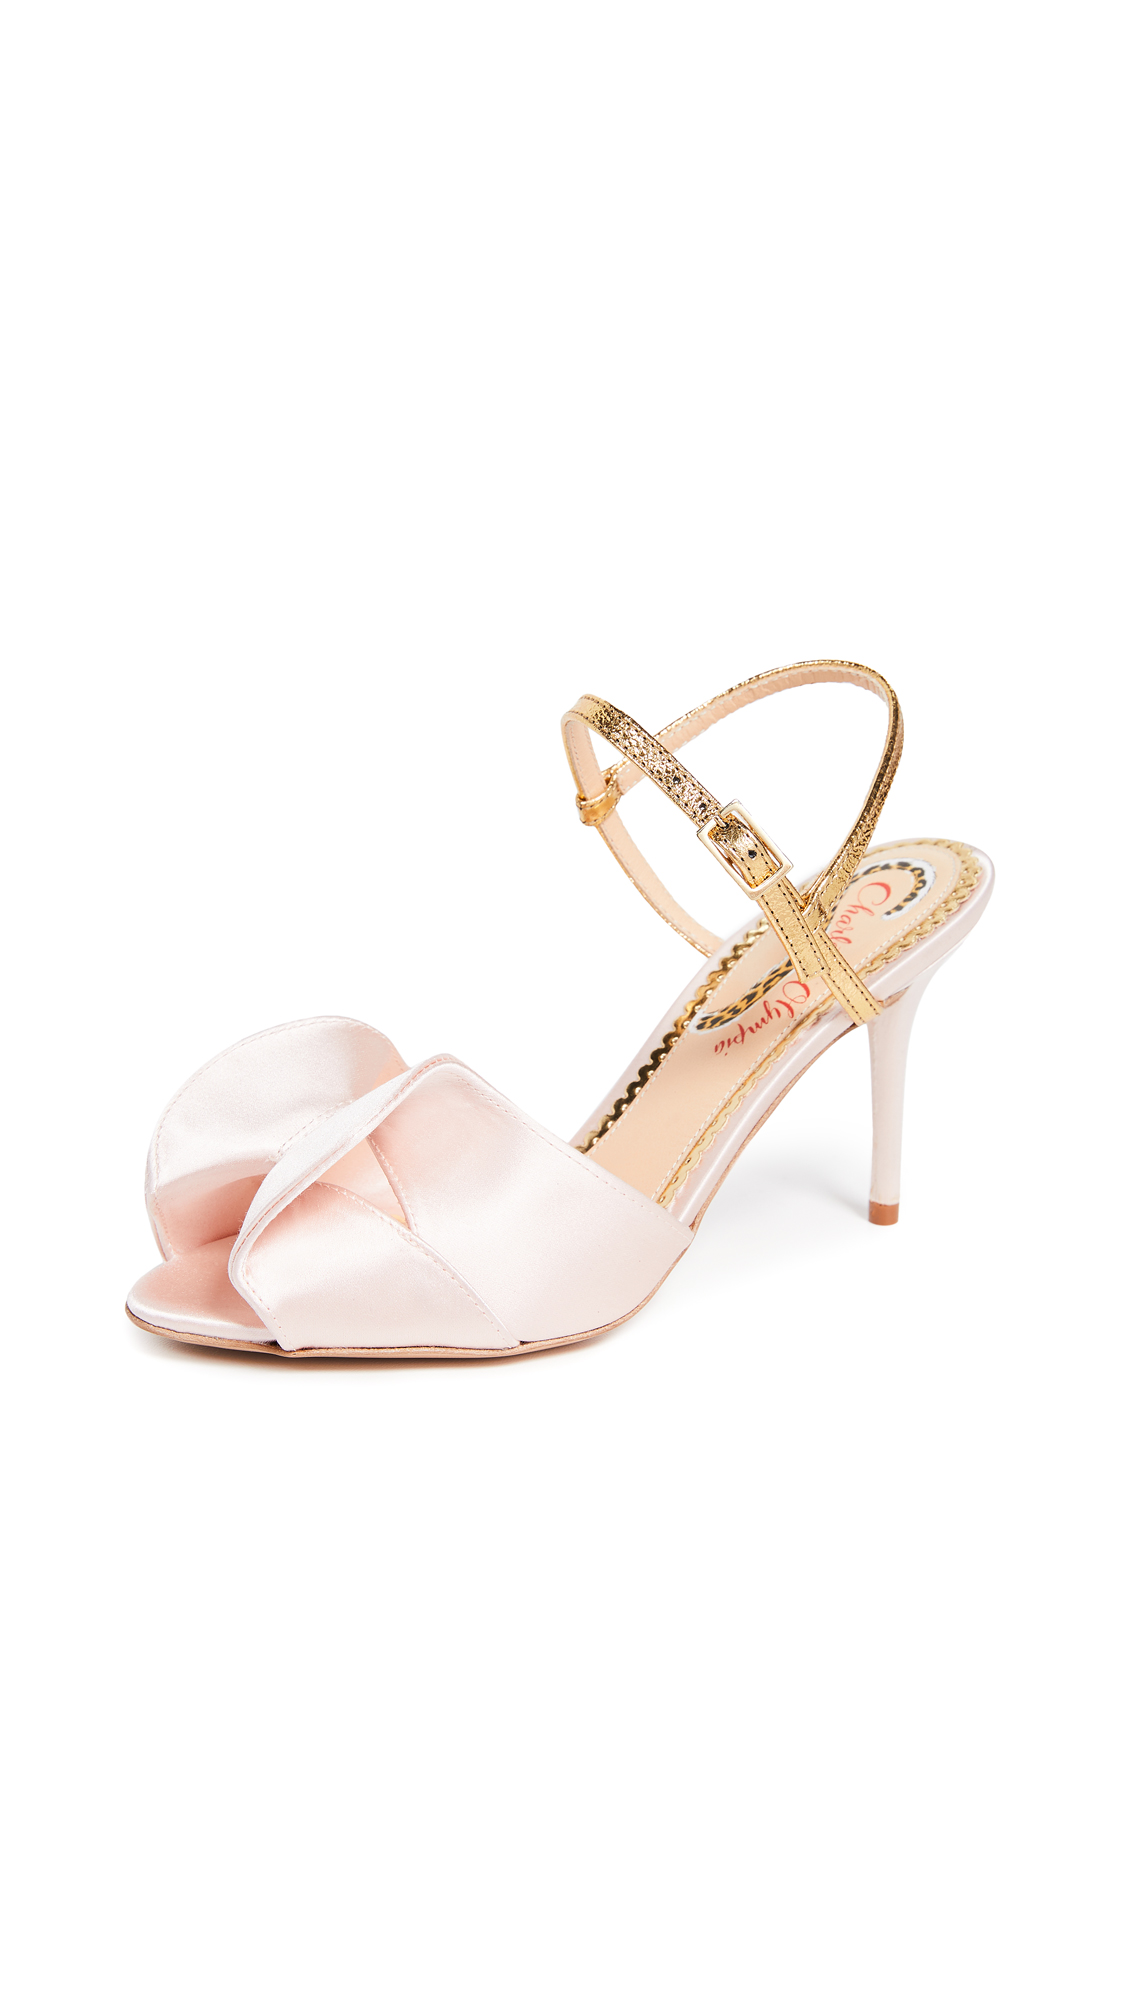 Charlotte Olympia Patrice Sandals - Pale Pink